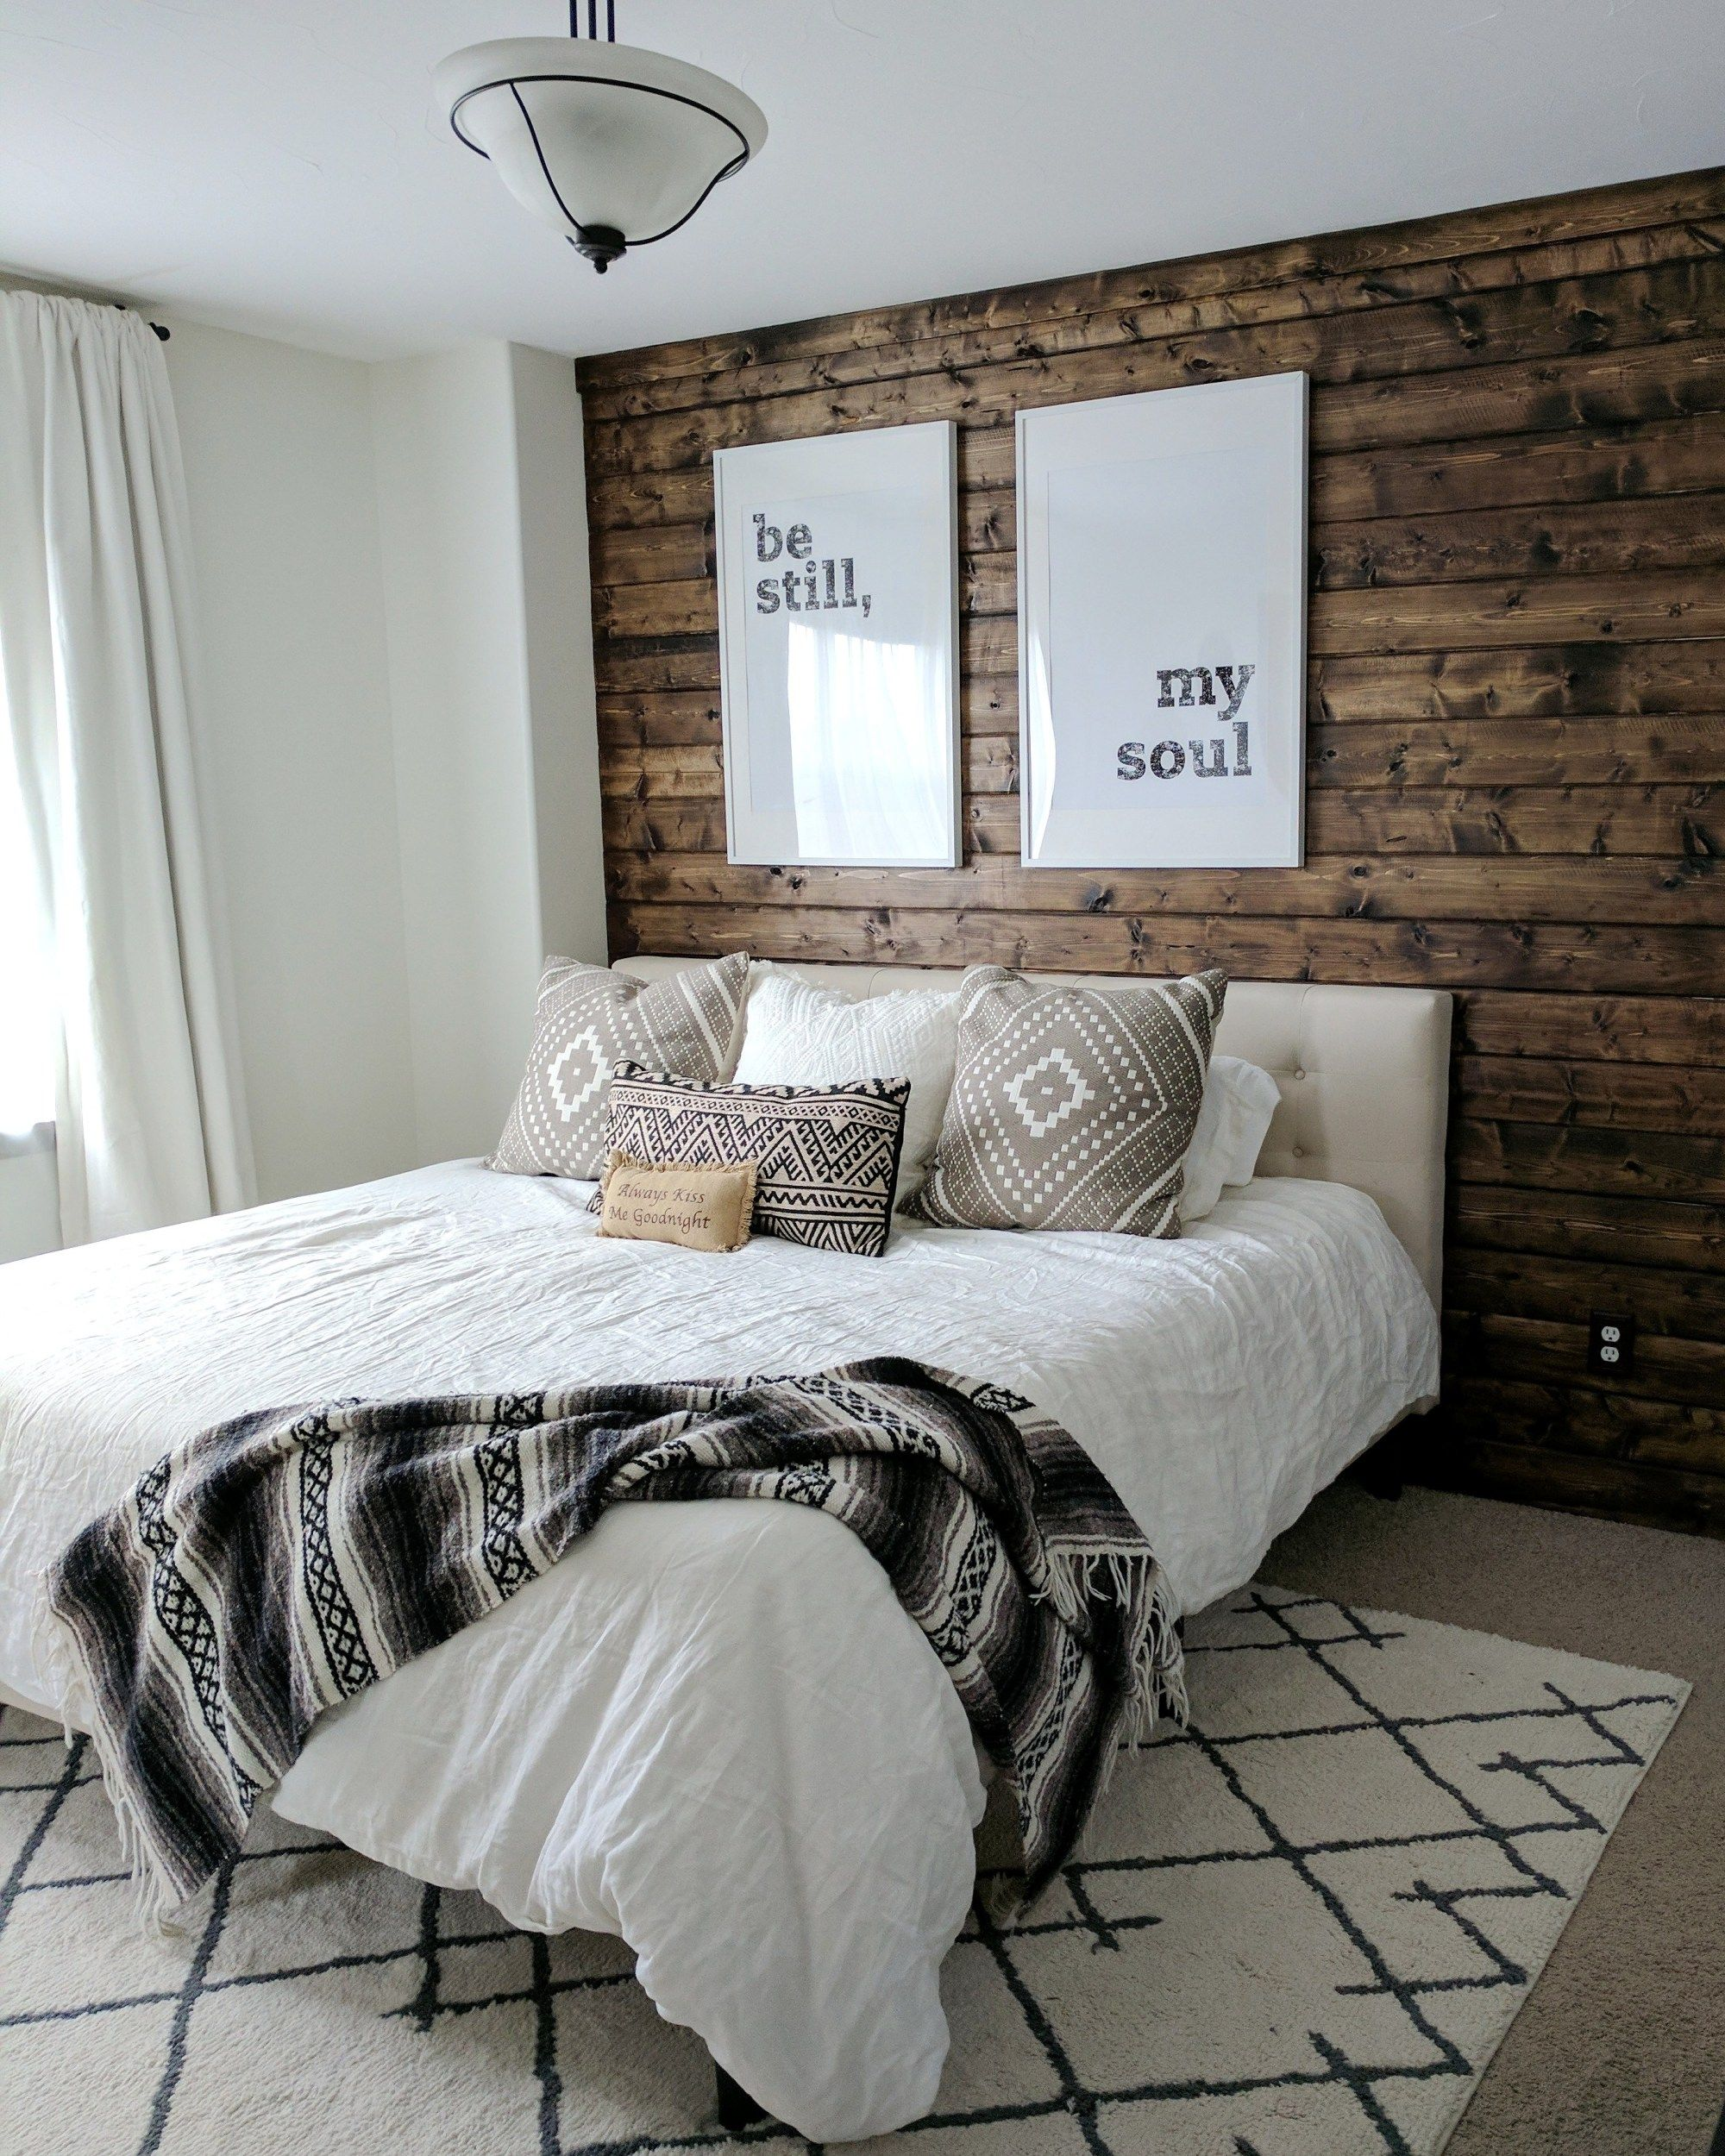 How To Build A Wood Plank Accent Wall Accent wall